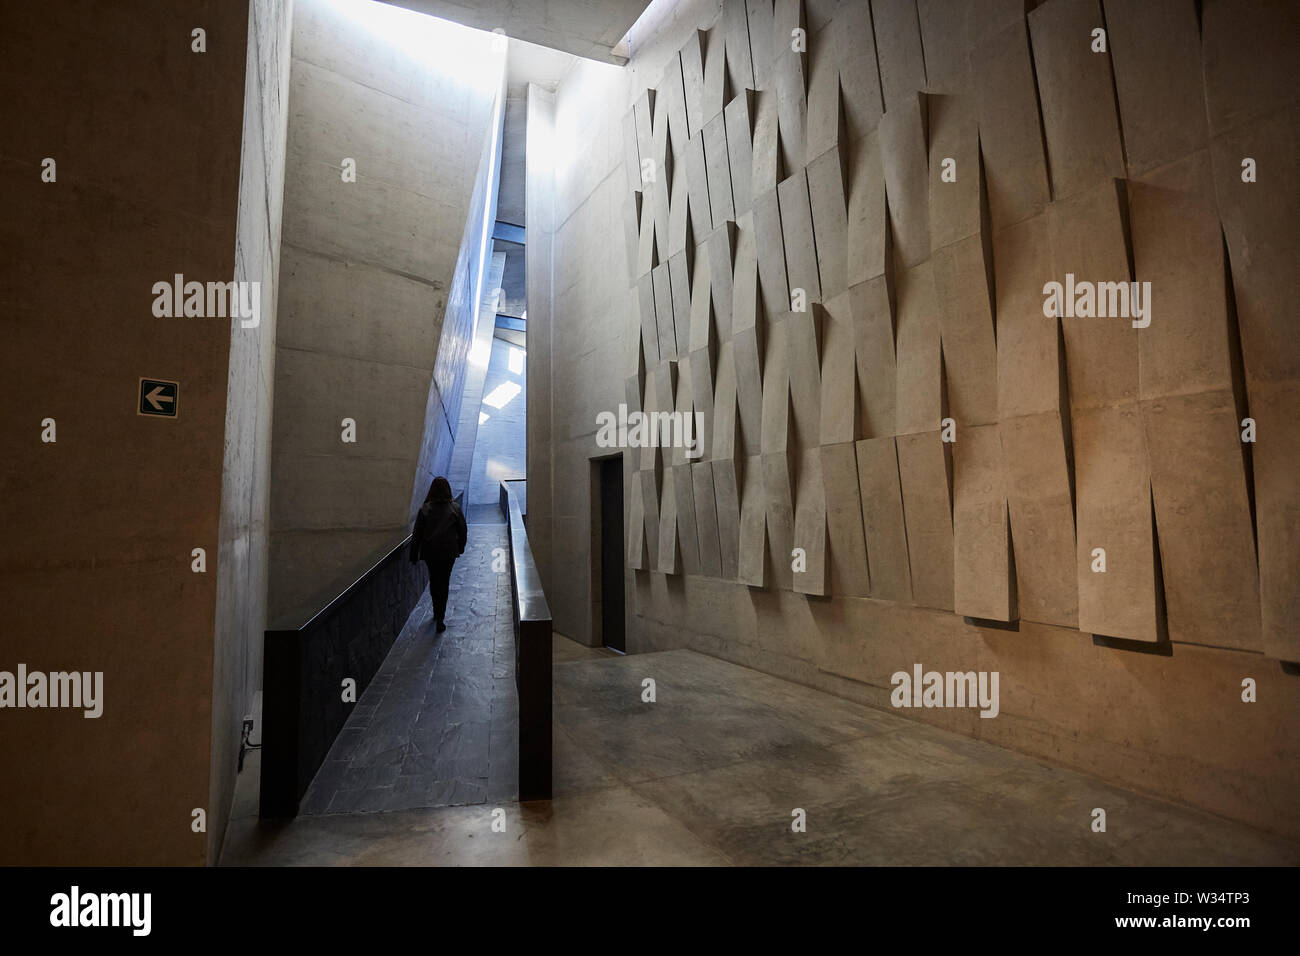 11 July 2019, Argentina, San Carlos: View on a corridor in the building of Piedra Infinita. The Argentinian winery Piedra Infinita of the brand Zuccardi, was awarded by the World's Best Vineyards Academy as the best winery and winery in the world. This award recognizes the best 50 wineries in the world, based on the experience offered to the visitor. Photo: Marcelo Aguilar/dpa - Stock Image